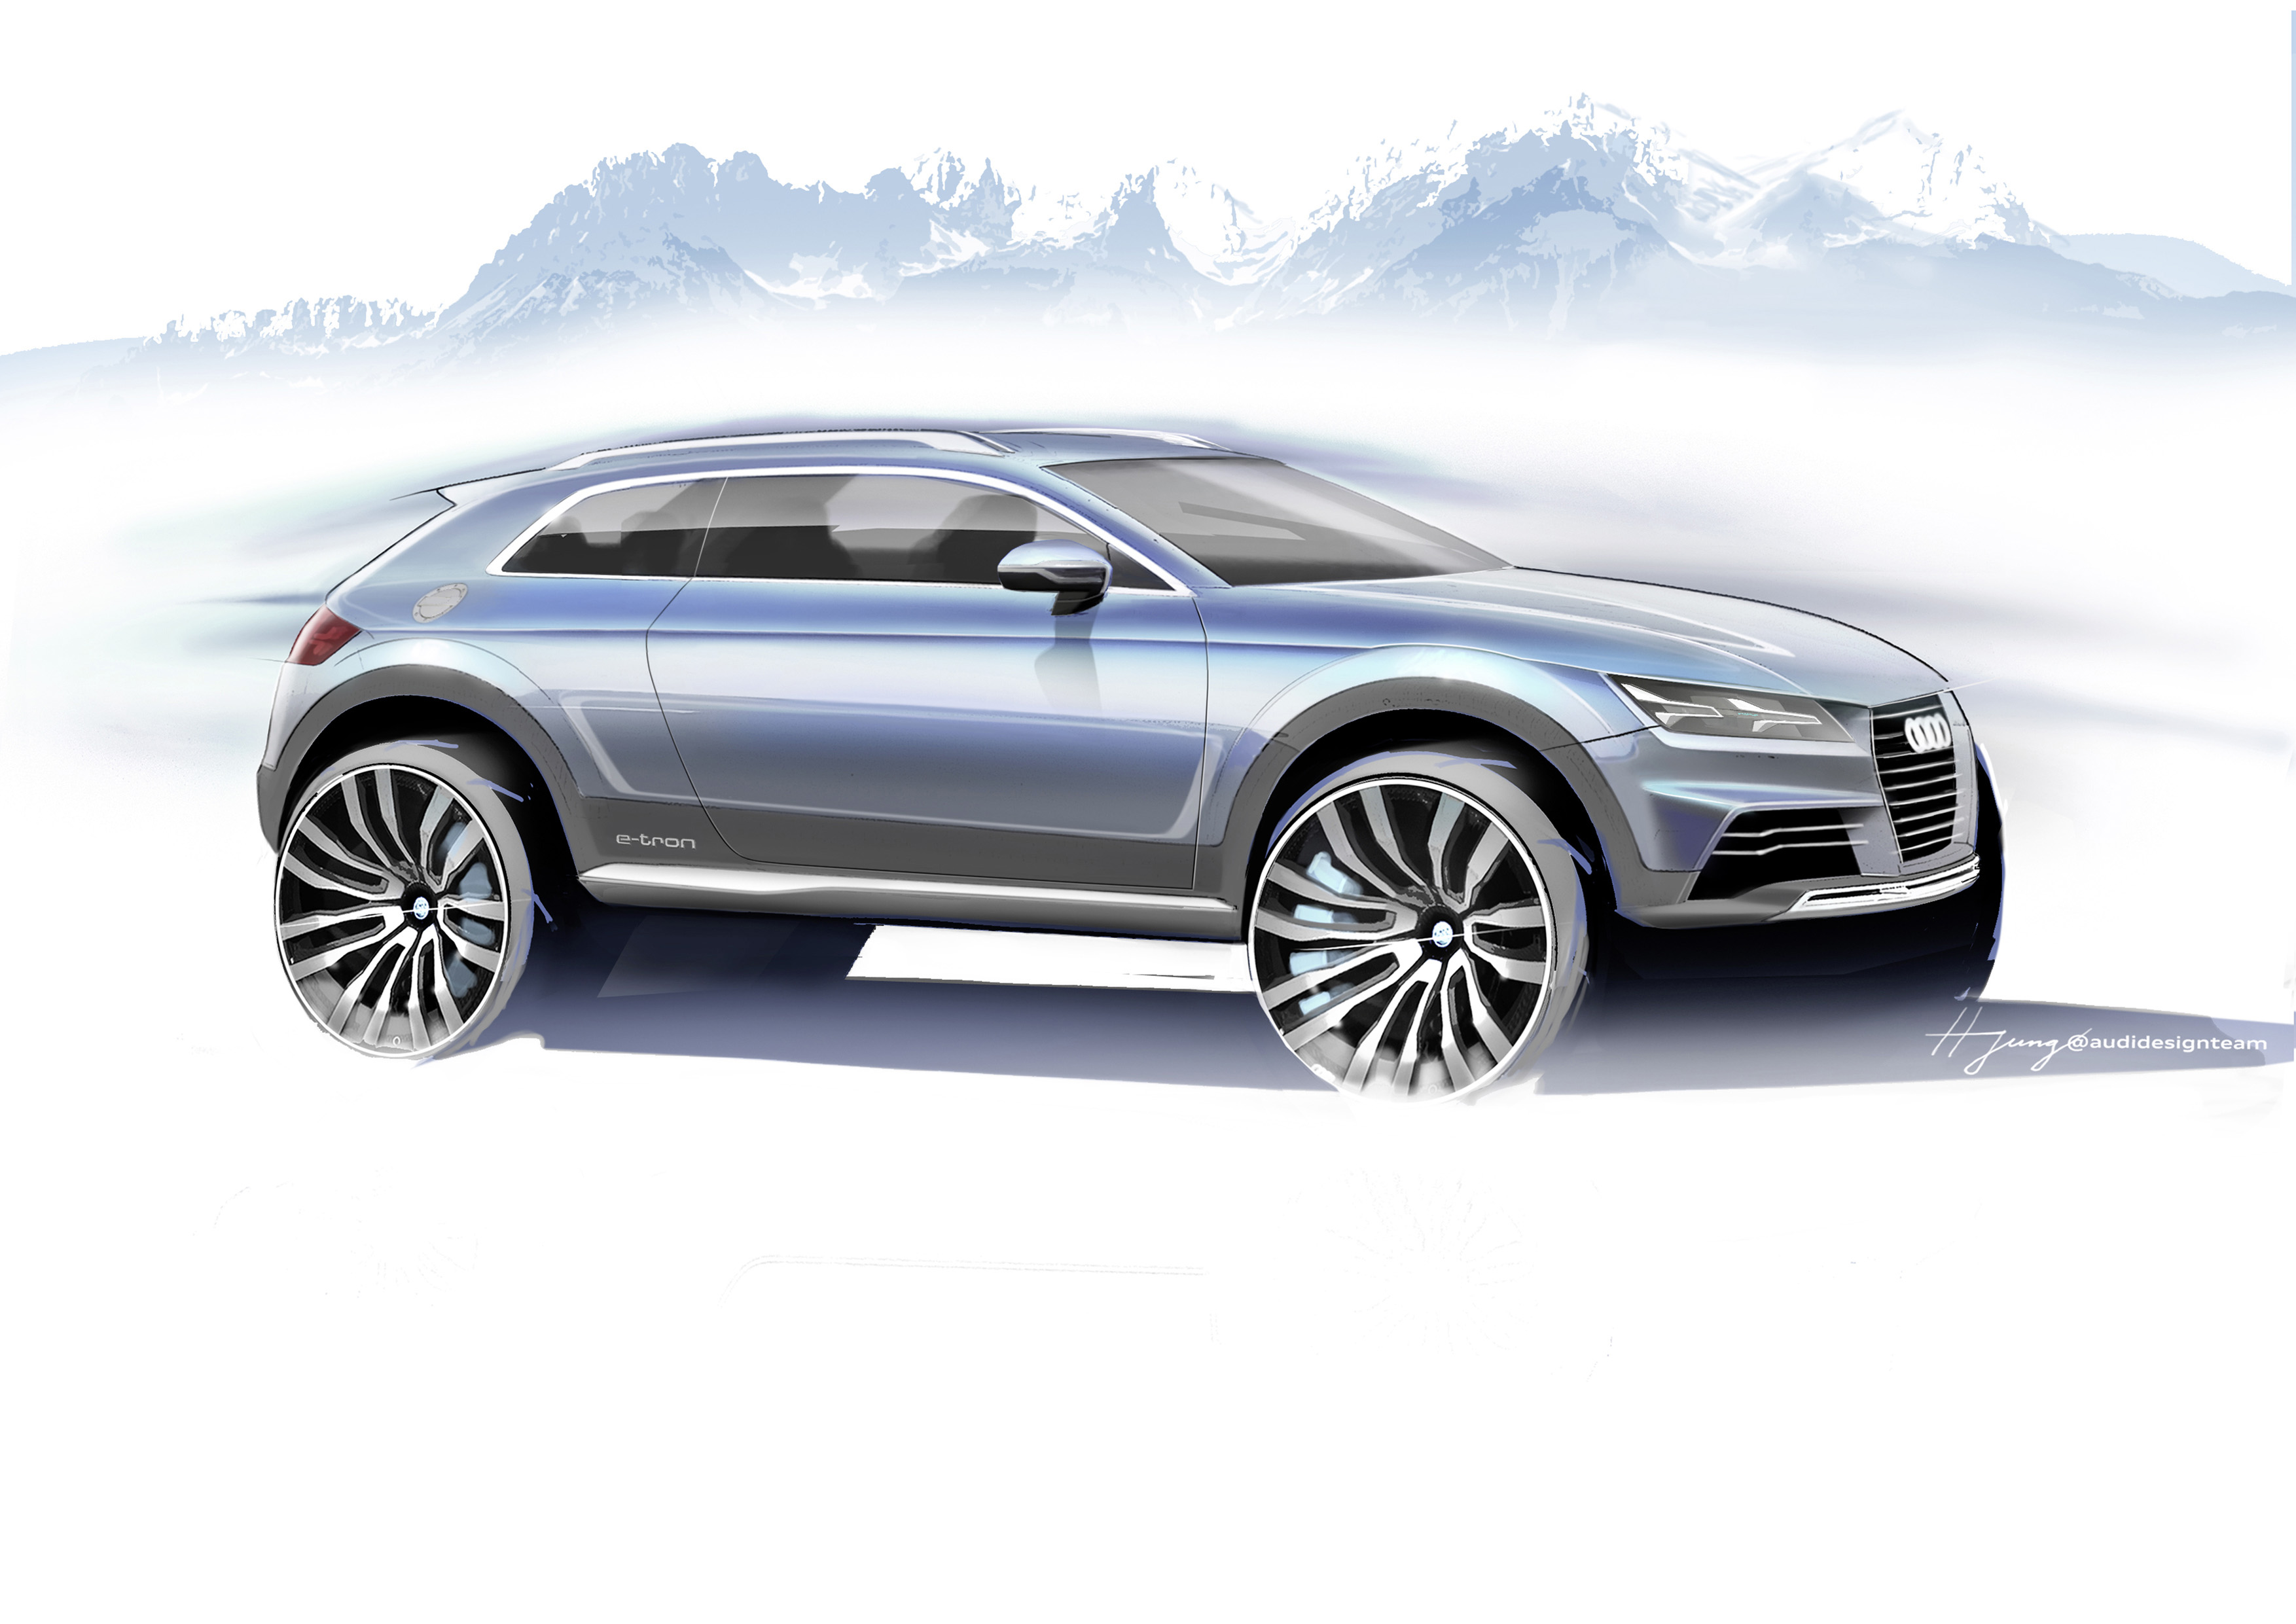 New Audi Crossover Concept Blends Q1 With e-tron, Debuts ...